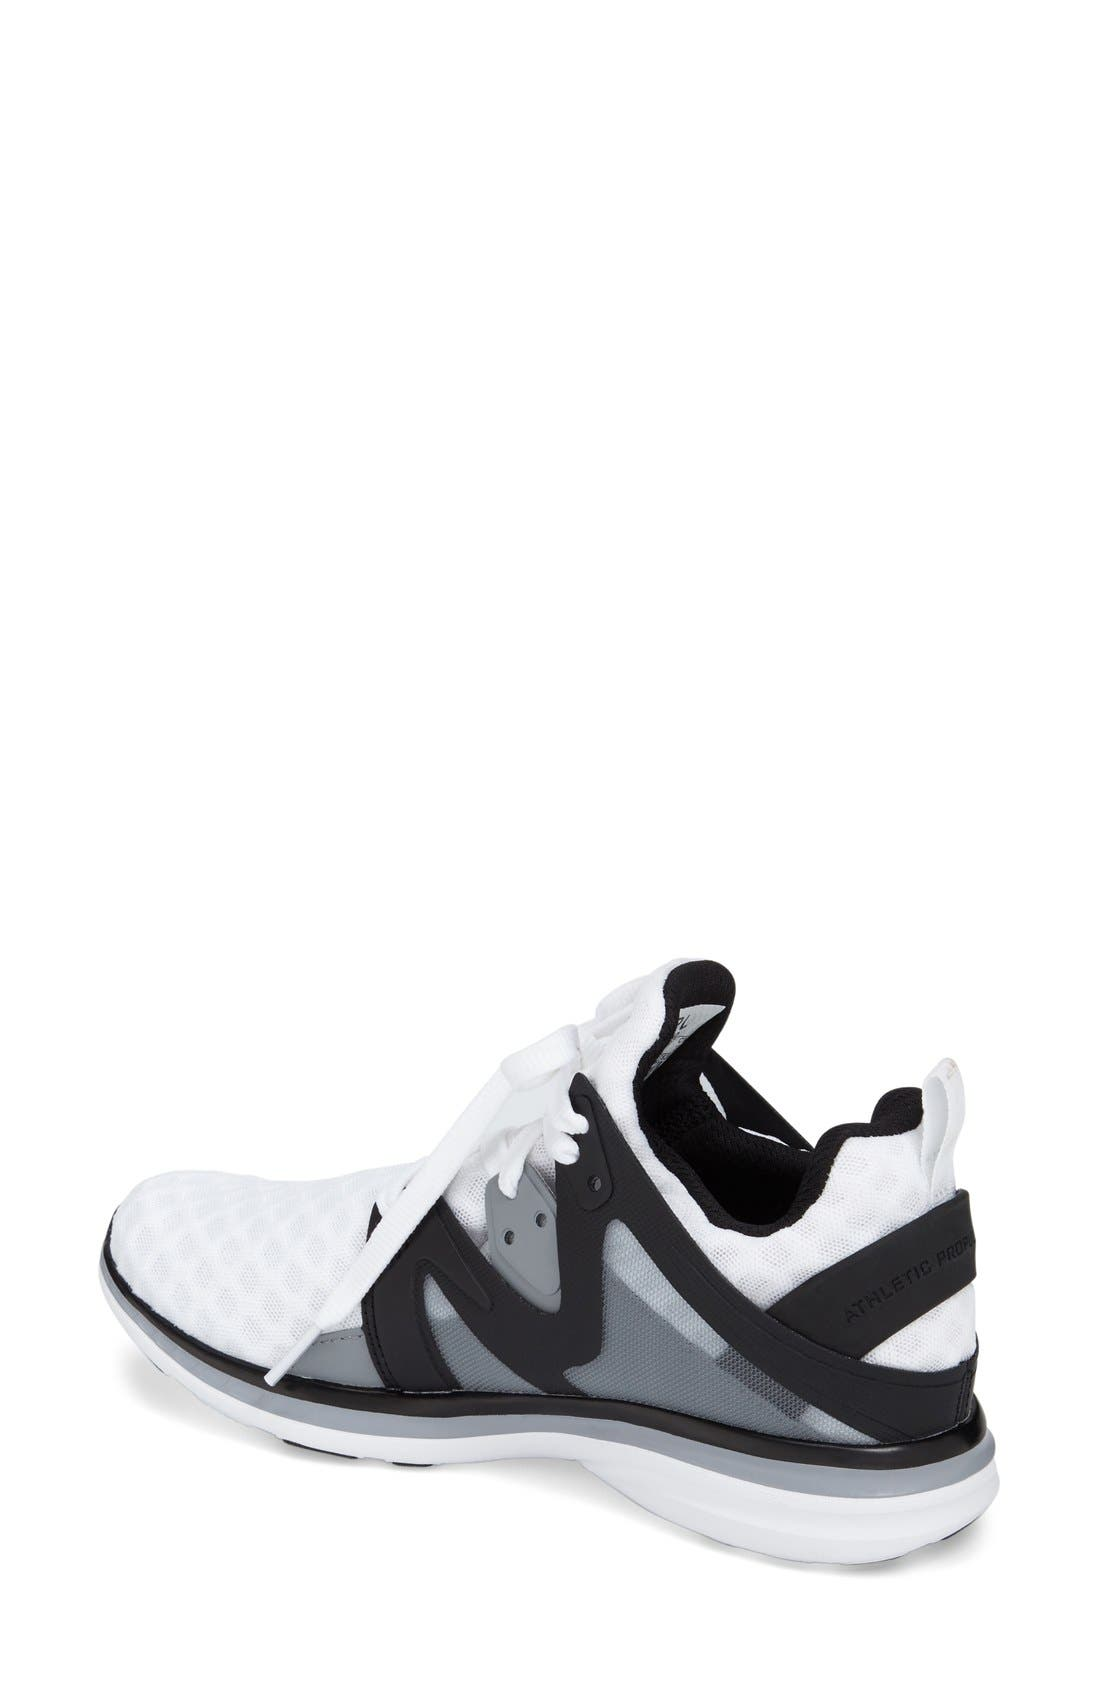 Alternate Image 2  - APL 'Ascend' Training Shoe (Women)